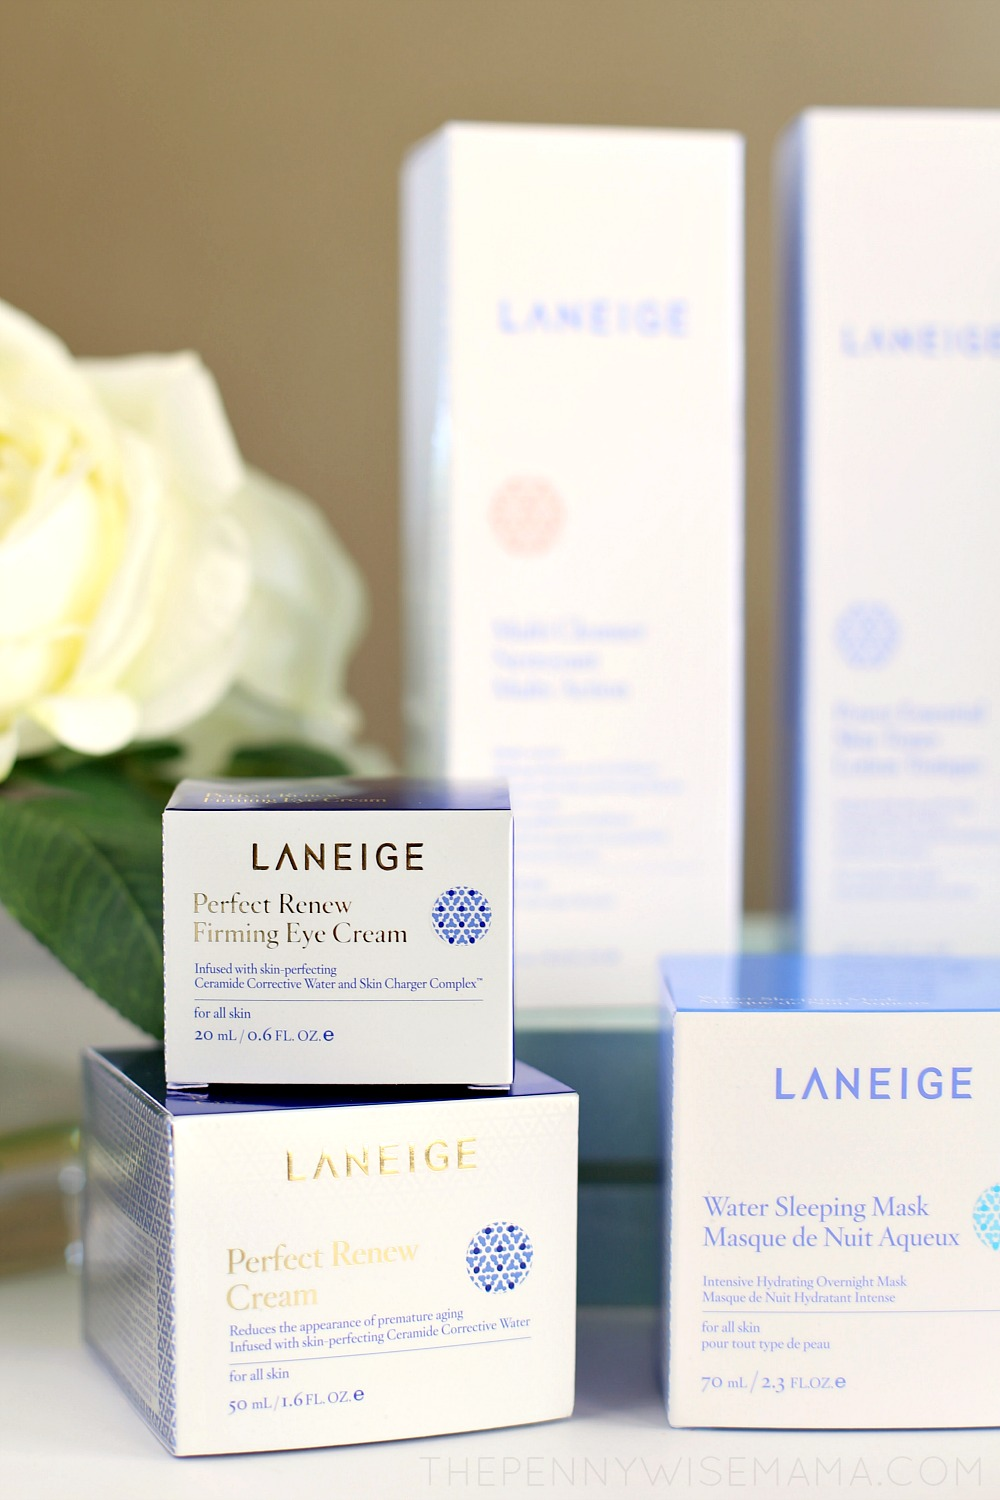 LANEIGE Skincare Products at Target